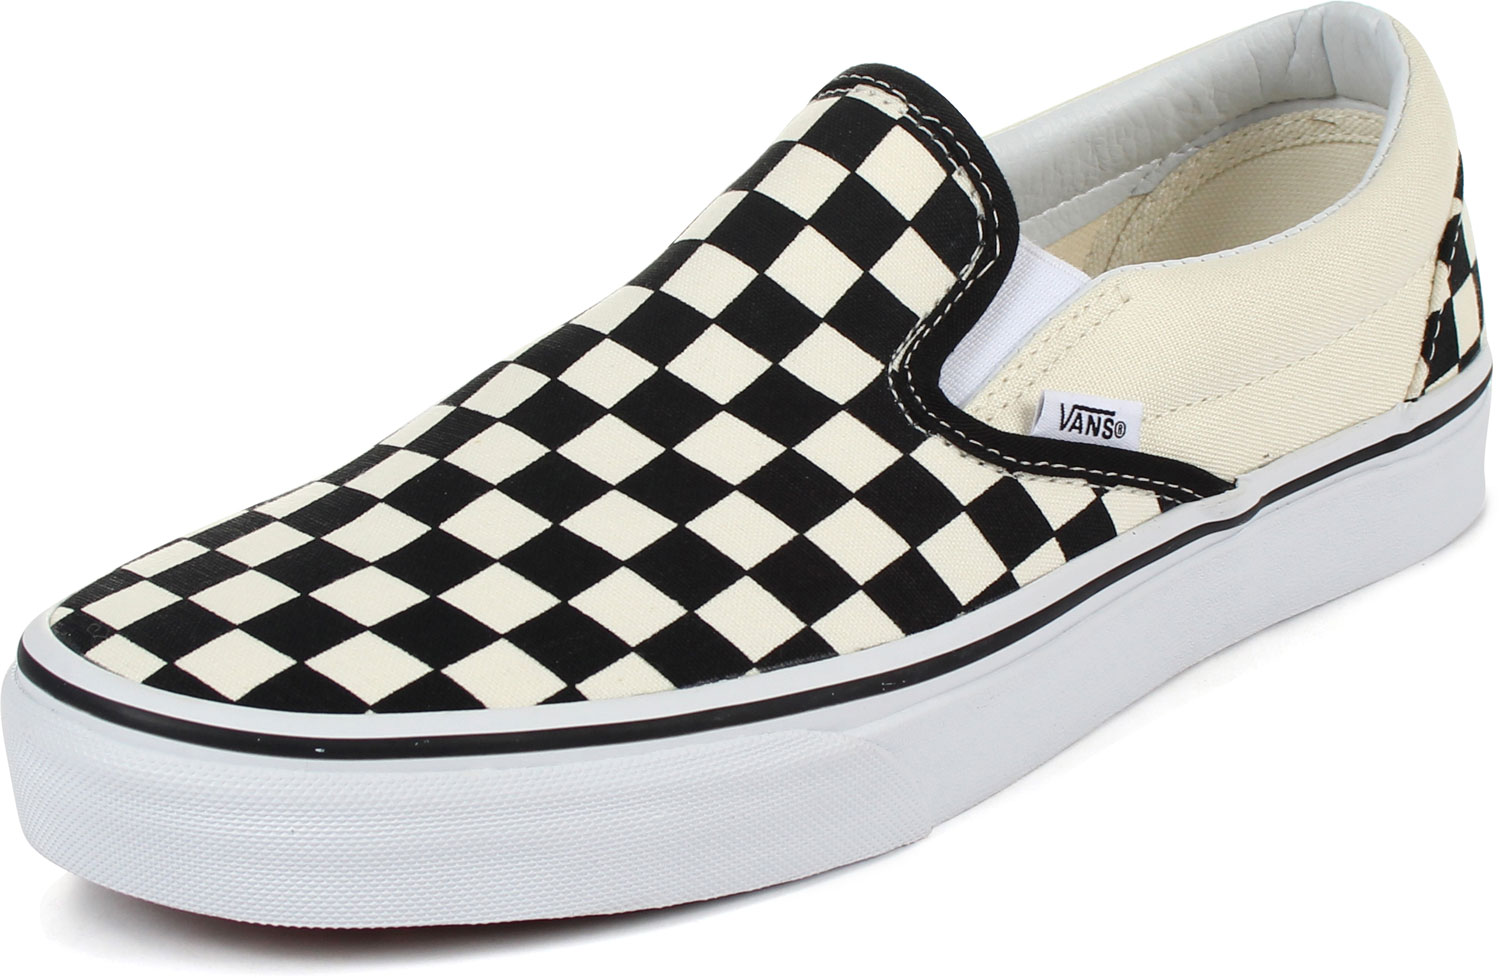 Shoes Slip Unisex Checkered Classic In Blackwhite Adult Vans On F1fTazv